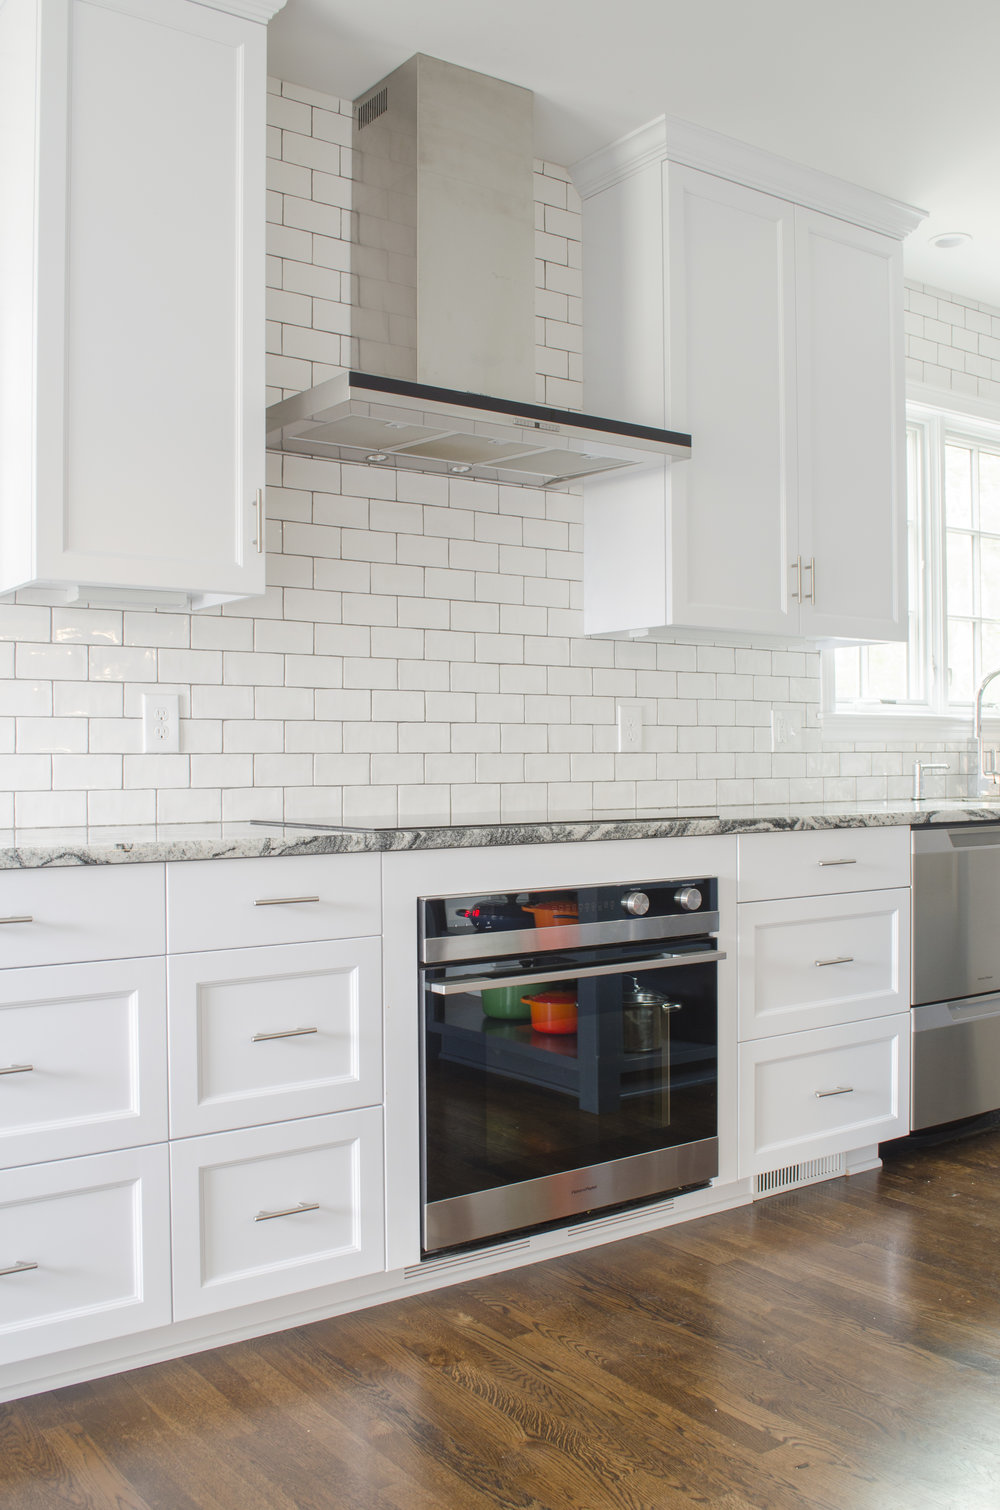 Kitchens — JP Compass Consulting & Construction